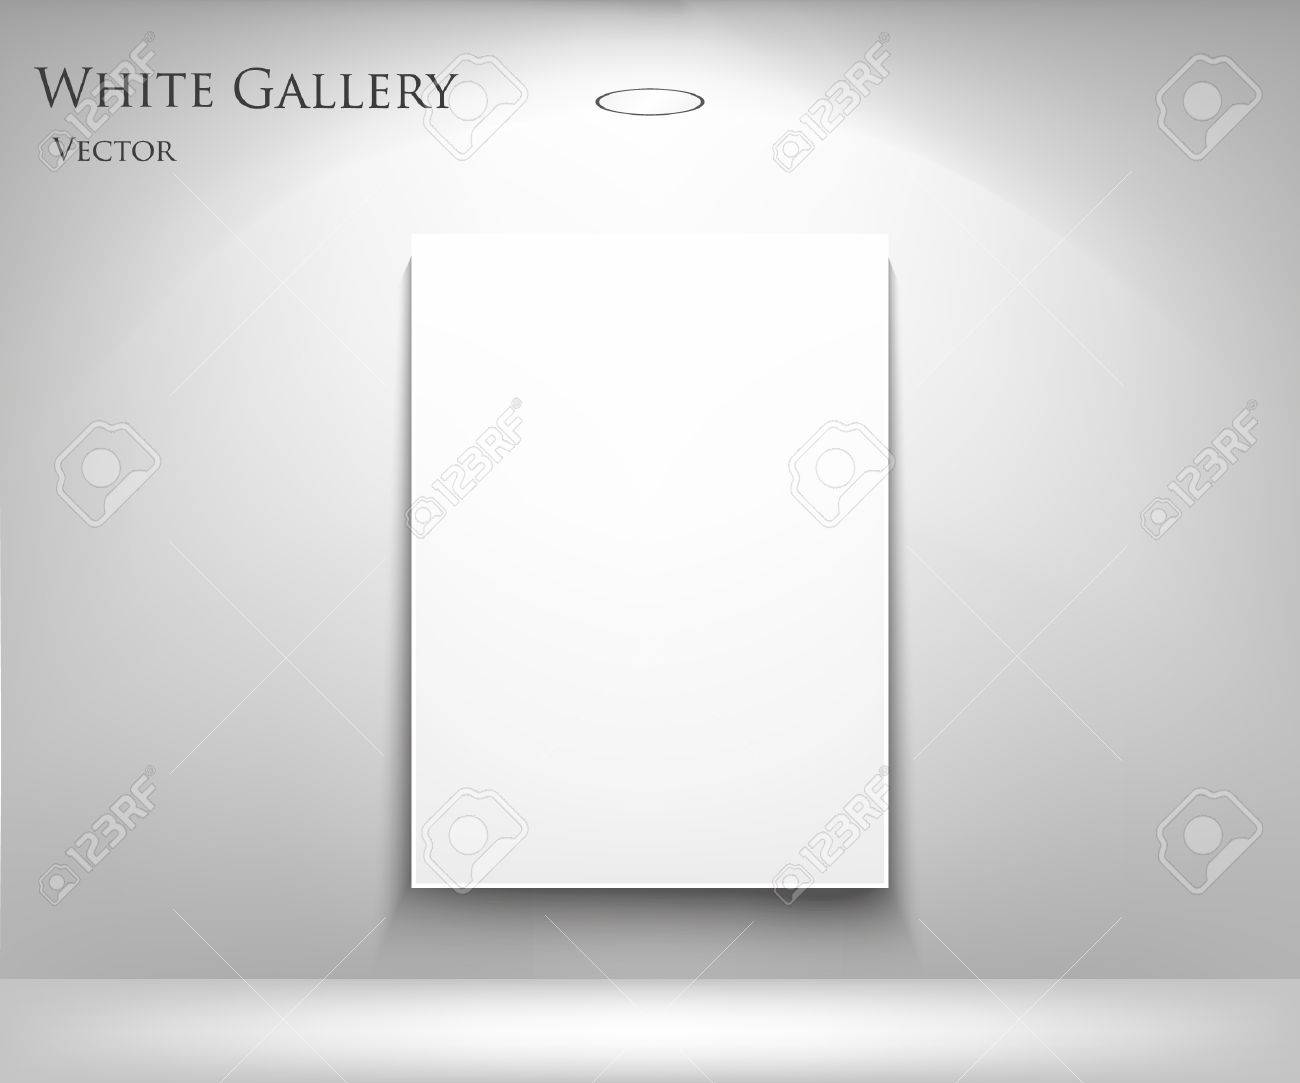 Empty picture frames on wall Interior Gallery Interior With Empty Frames On Wall Stock Vector 14127164 123rfcom Gallery Interior With Empty Frames On Wall Royalty Free Cliparts